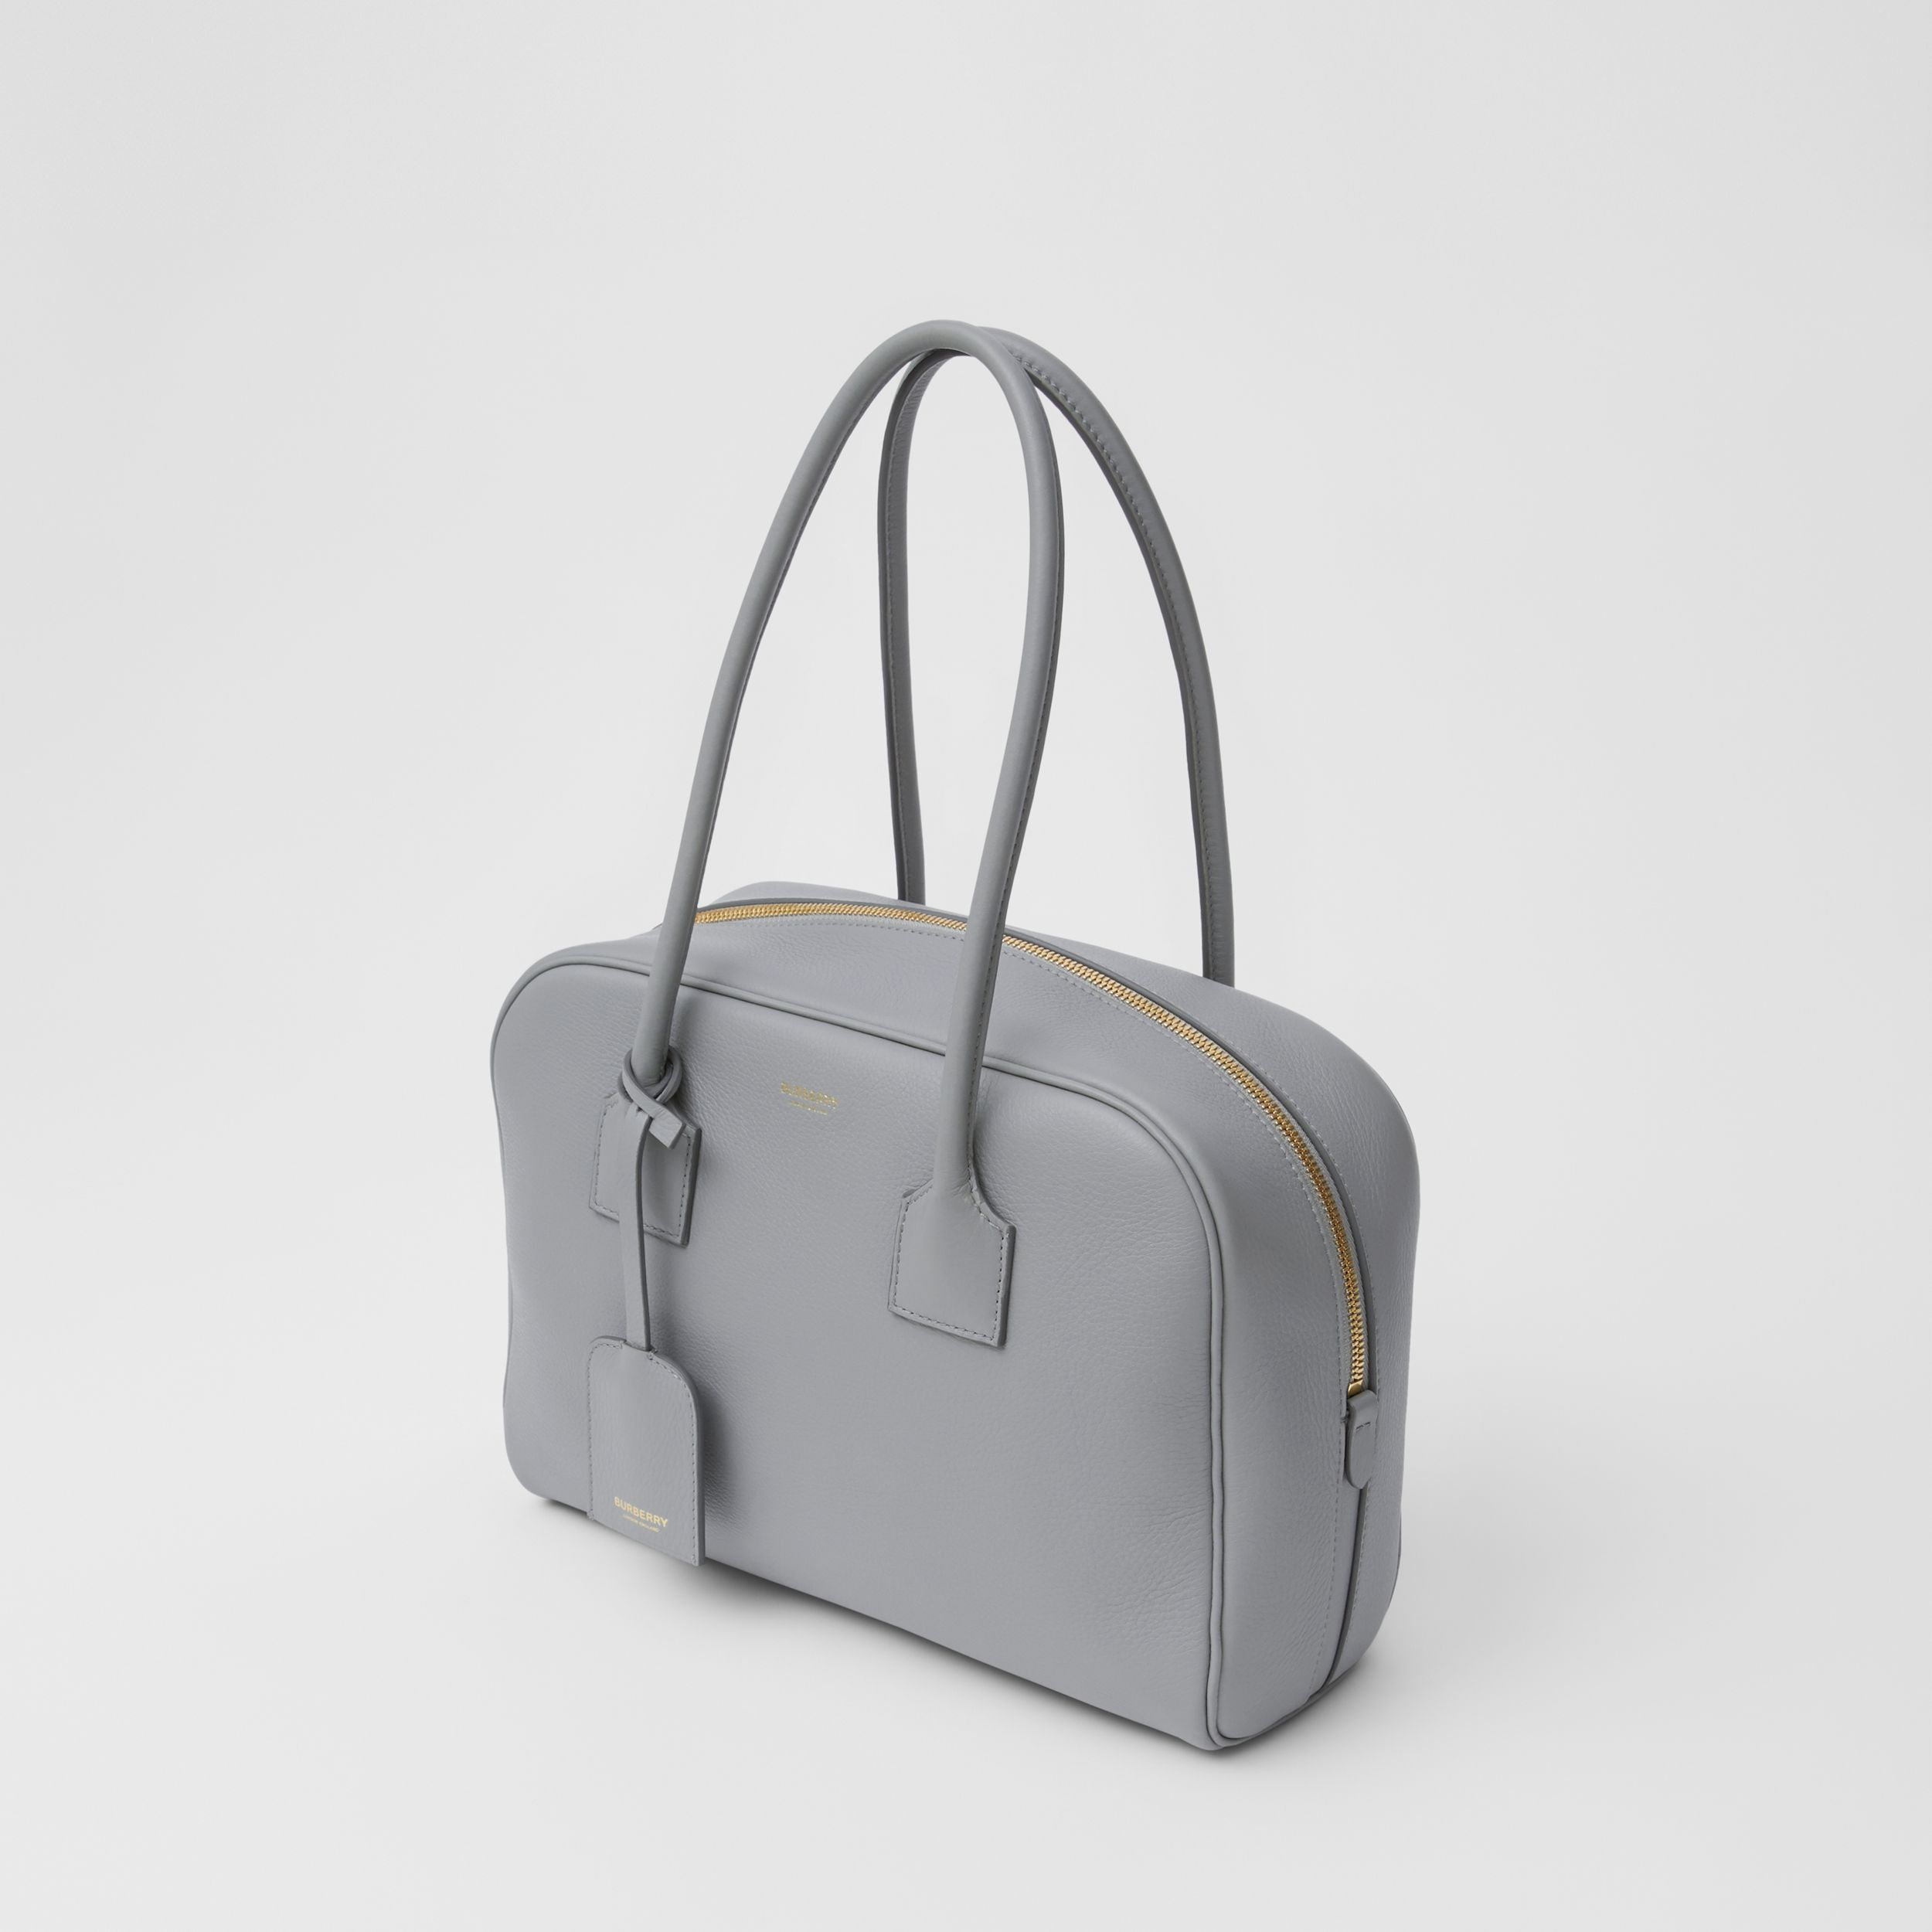 Medium Leather Half Cube Bag in Cloud Grey - Women | Burberry - 4